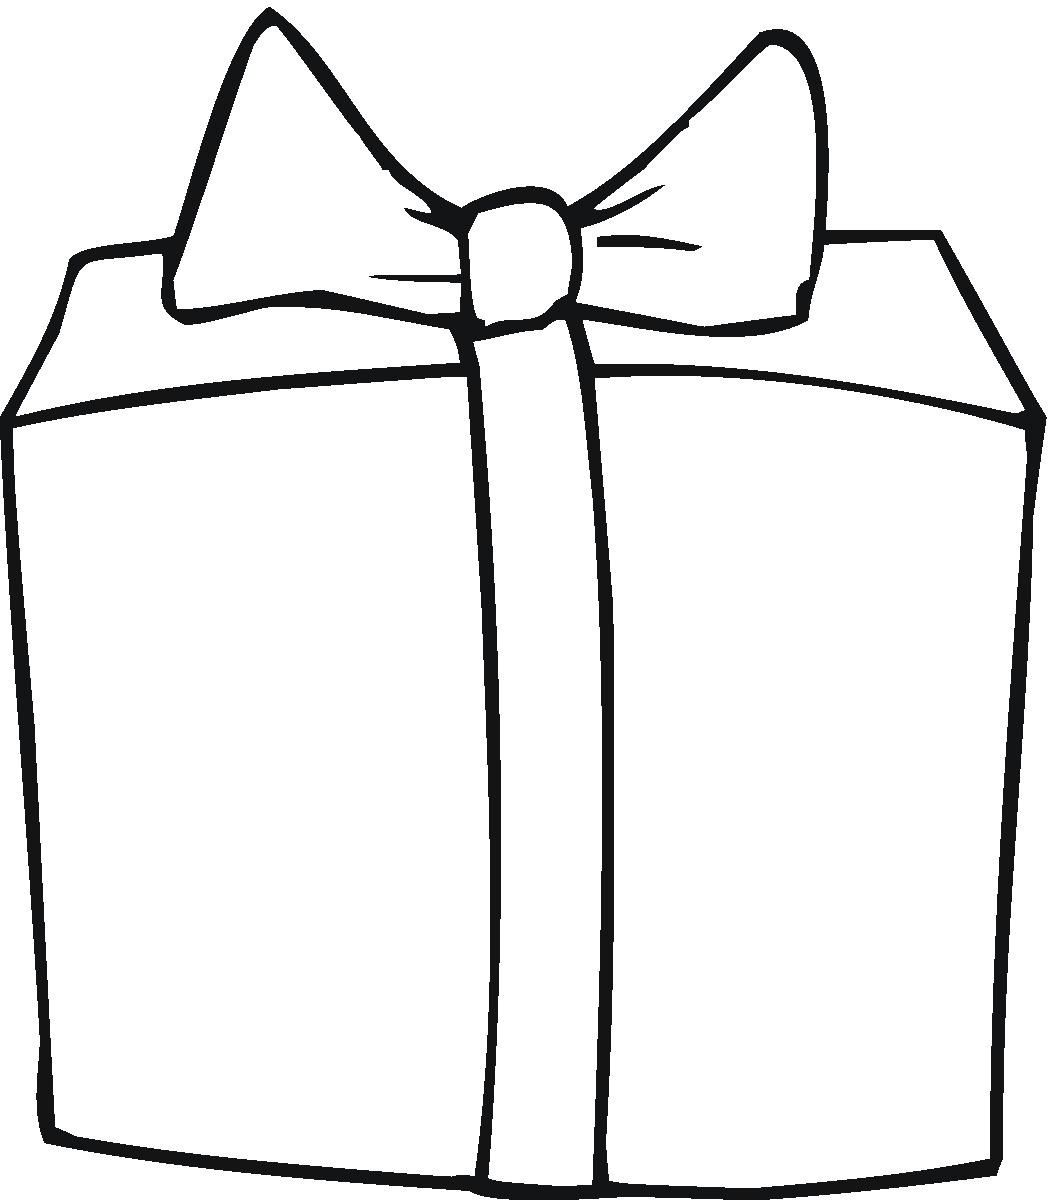 Free Present Cliparts Outline Download Free Clip Art